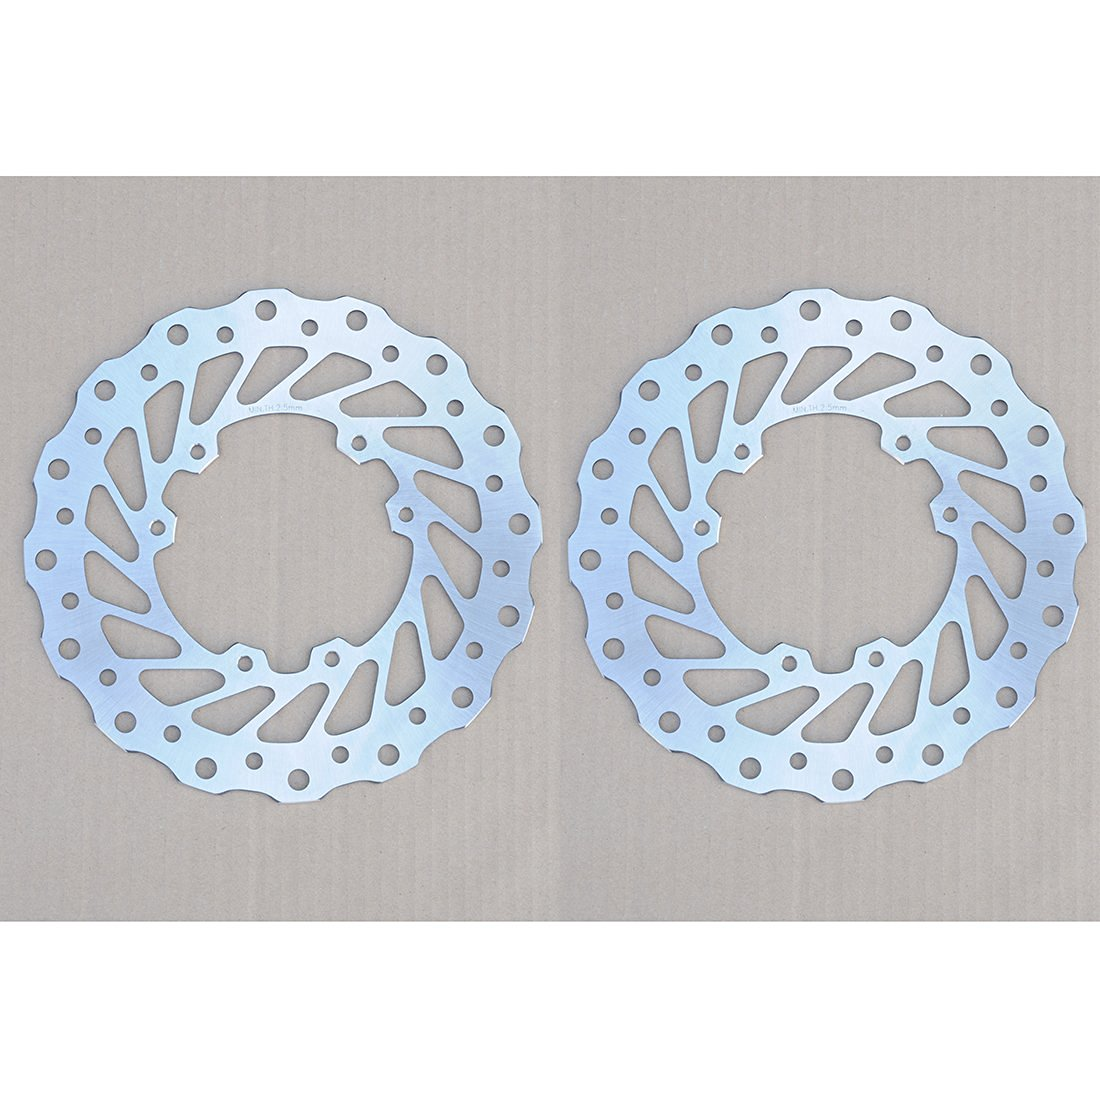 Wotefusi Motorcycle Front Brake Disc Rotor For Honda CR125 CR250 1995-2007 1996 1997 1998 1999 2000 2001 2002 2003 2004 2005 2006 CR250 CRE F250R F300X F500X 2008-2009 CRF250 2004-2009 2008 CRF250R CRF450 CRF450R CR500